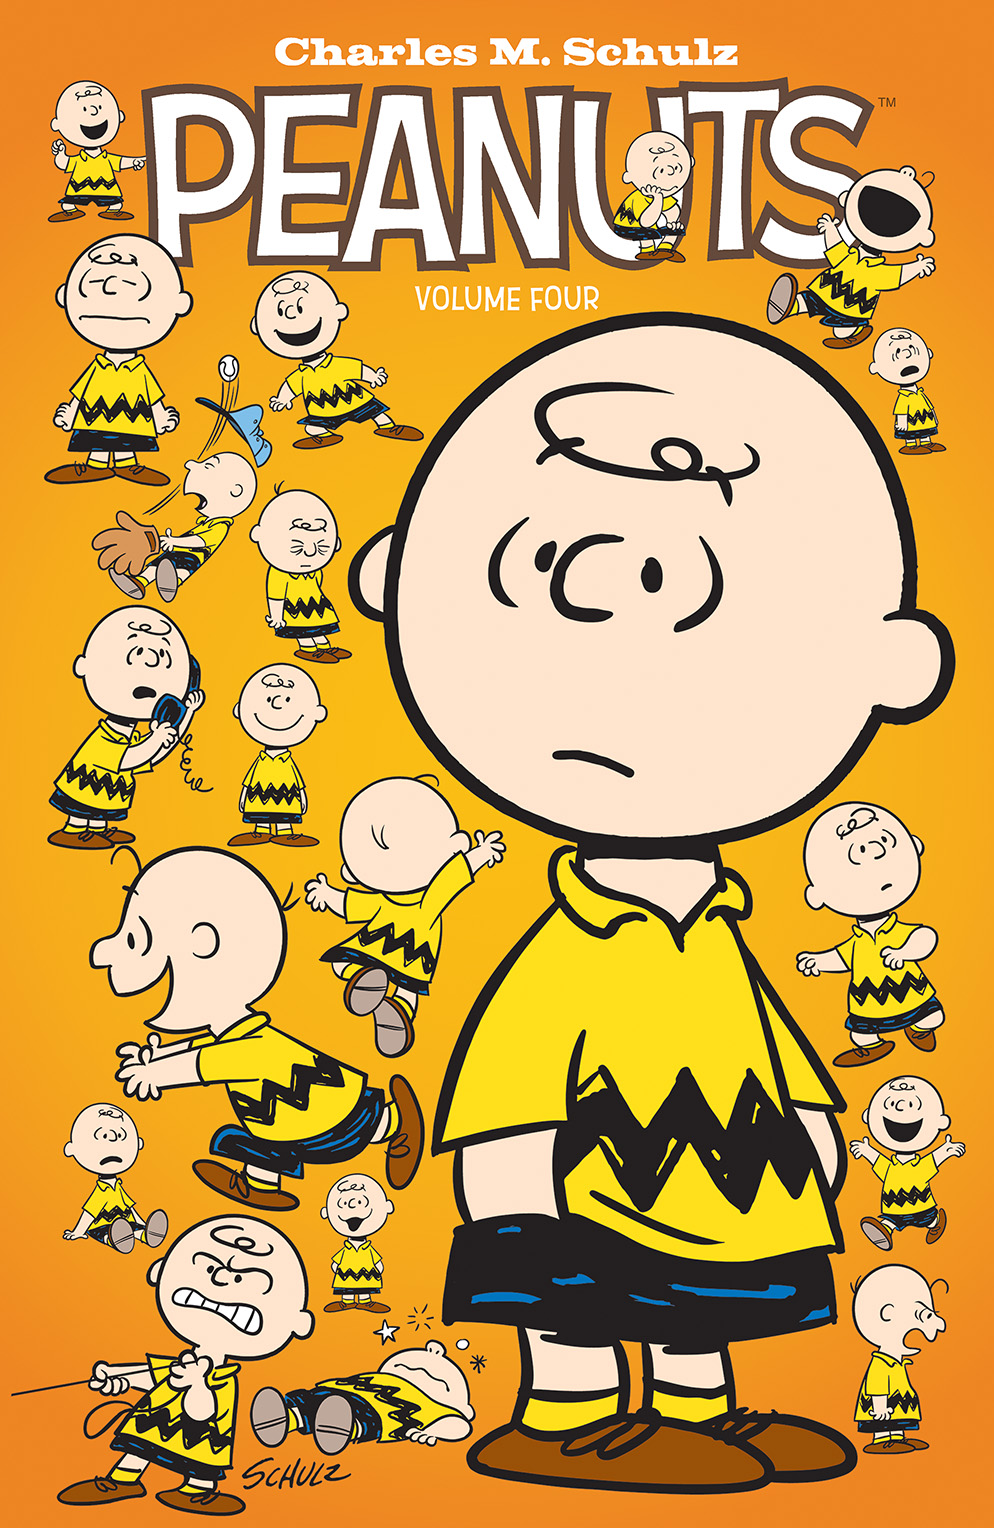 PEANUTS VOL. 4 TP Cover